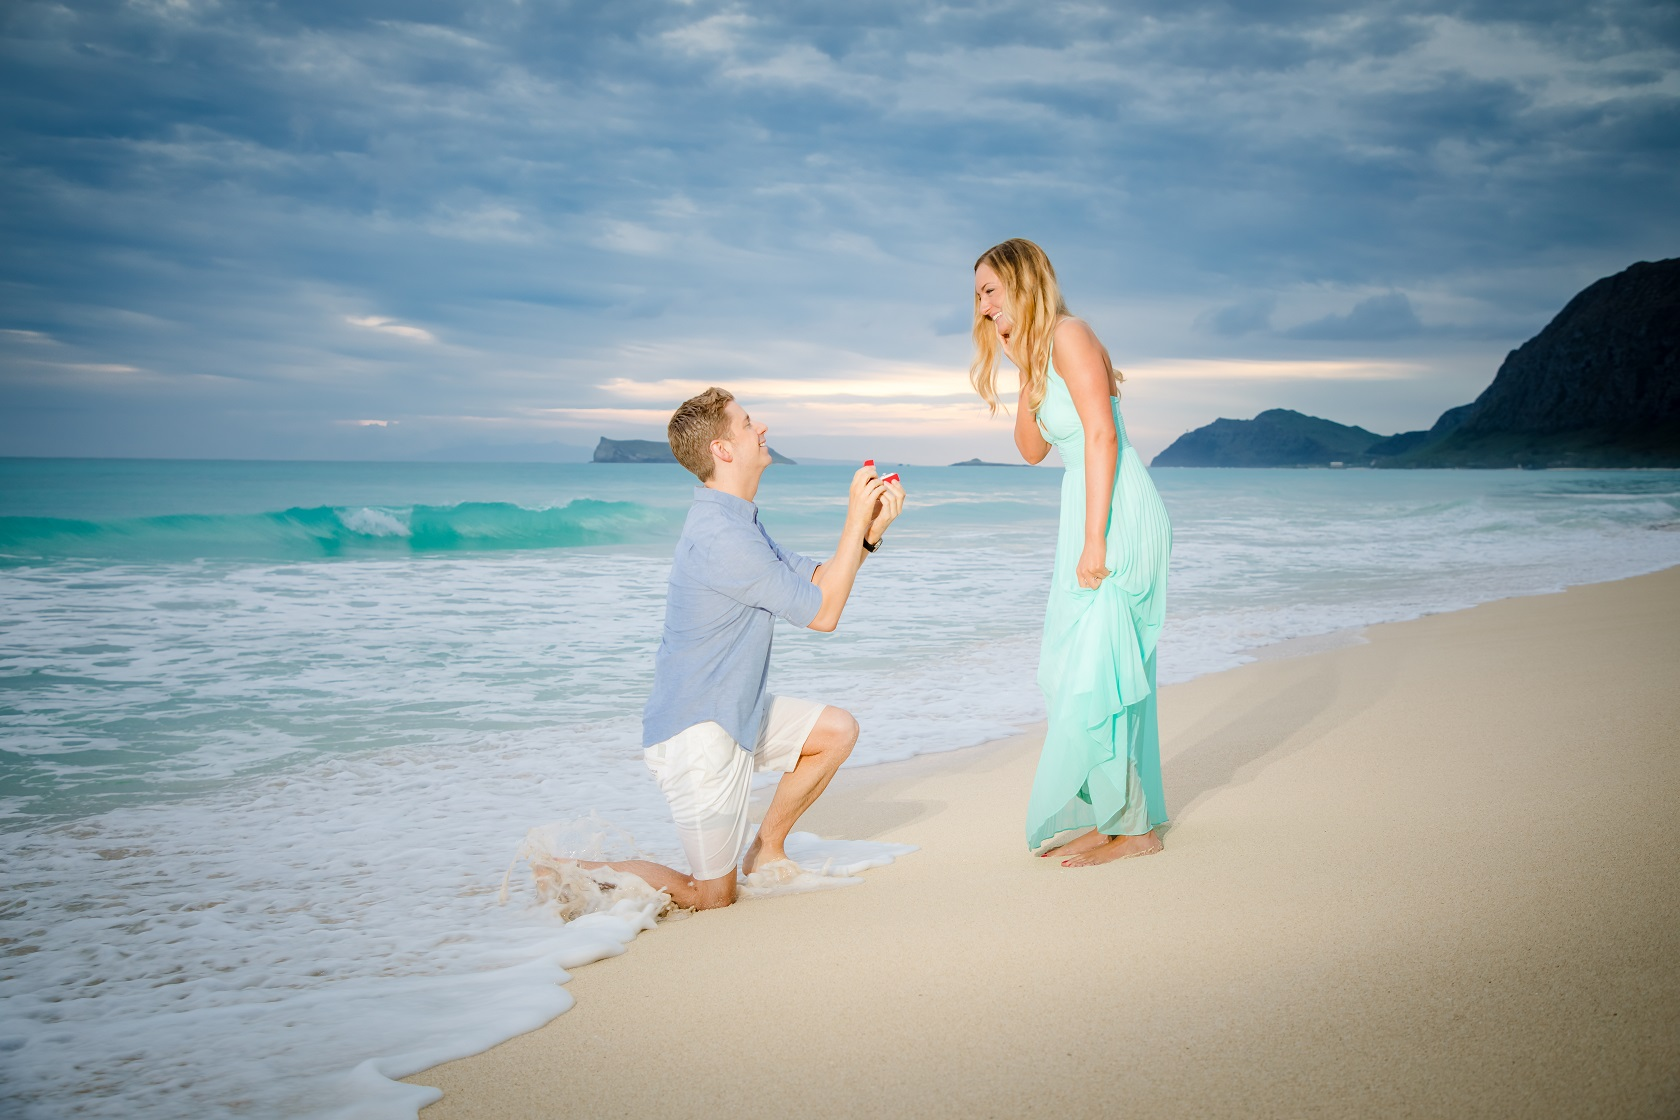 The sunrise didn't happen for Shawn's proposal to Brie....